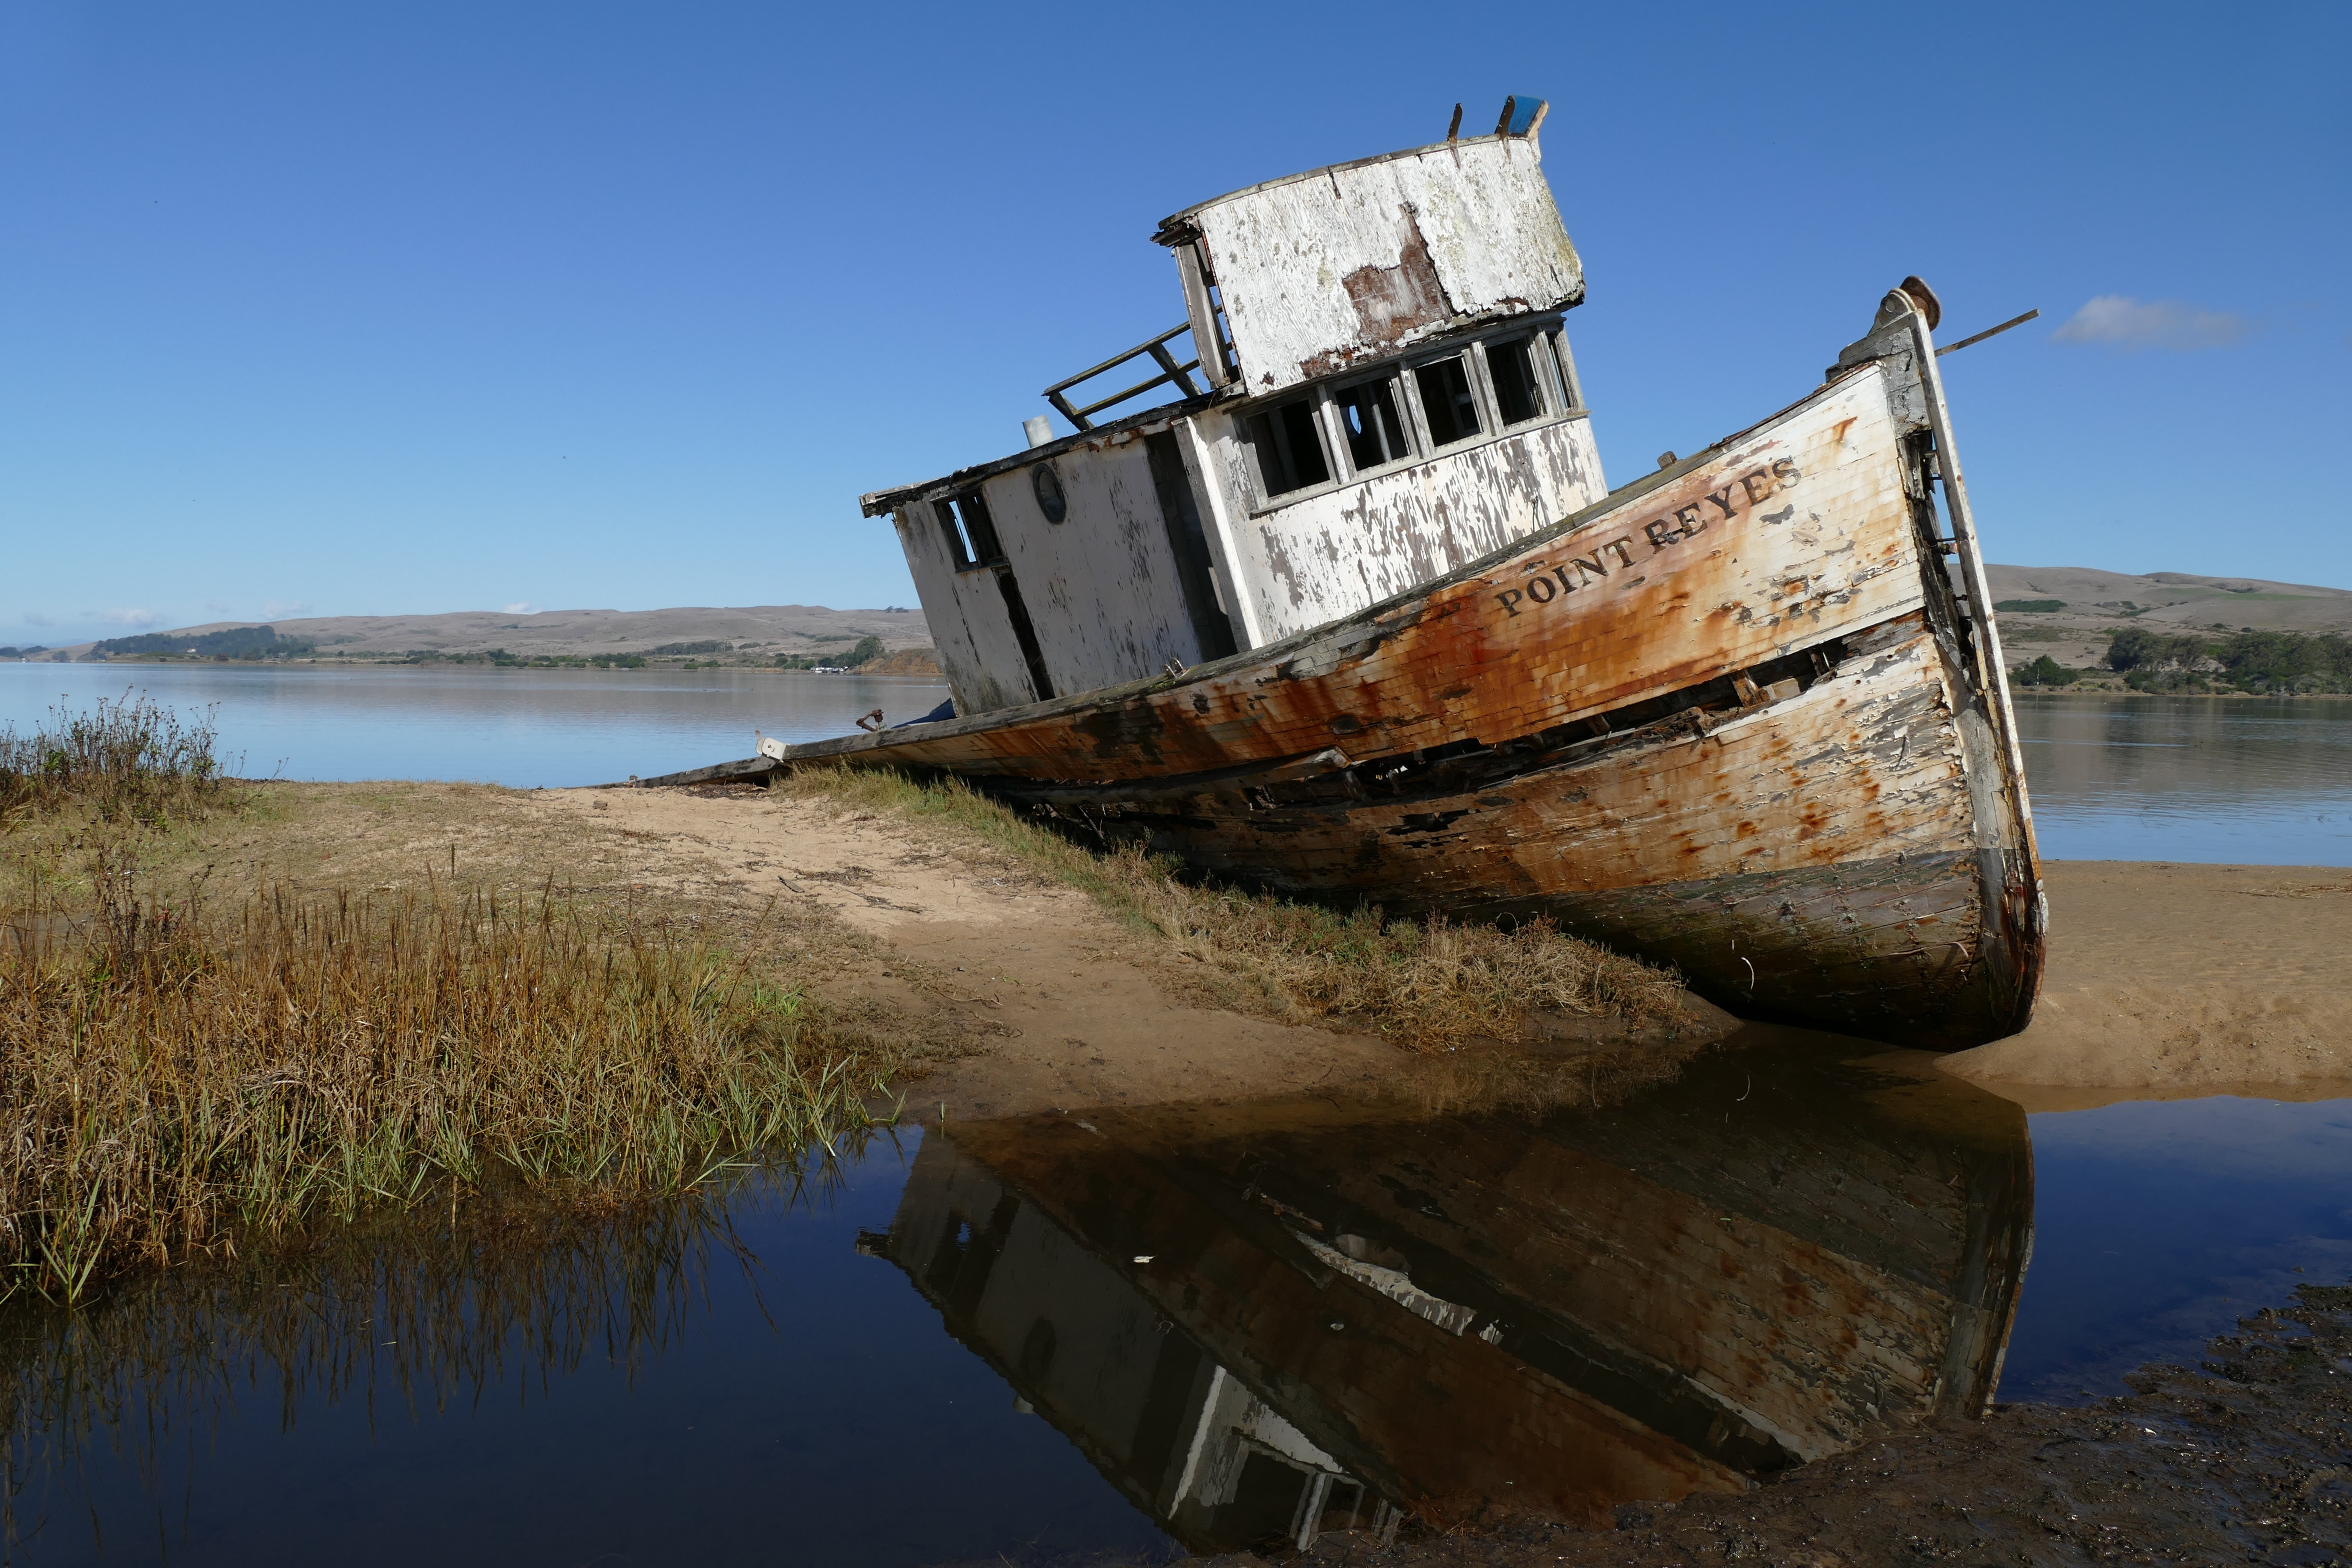 brown-and-white boat on land